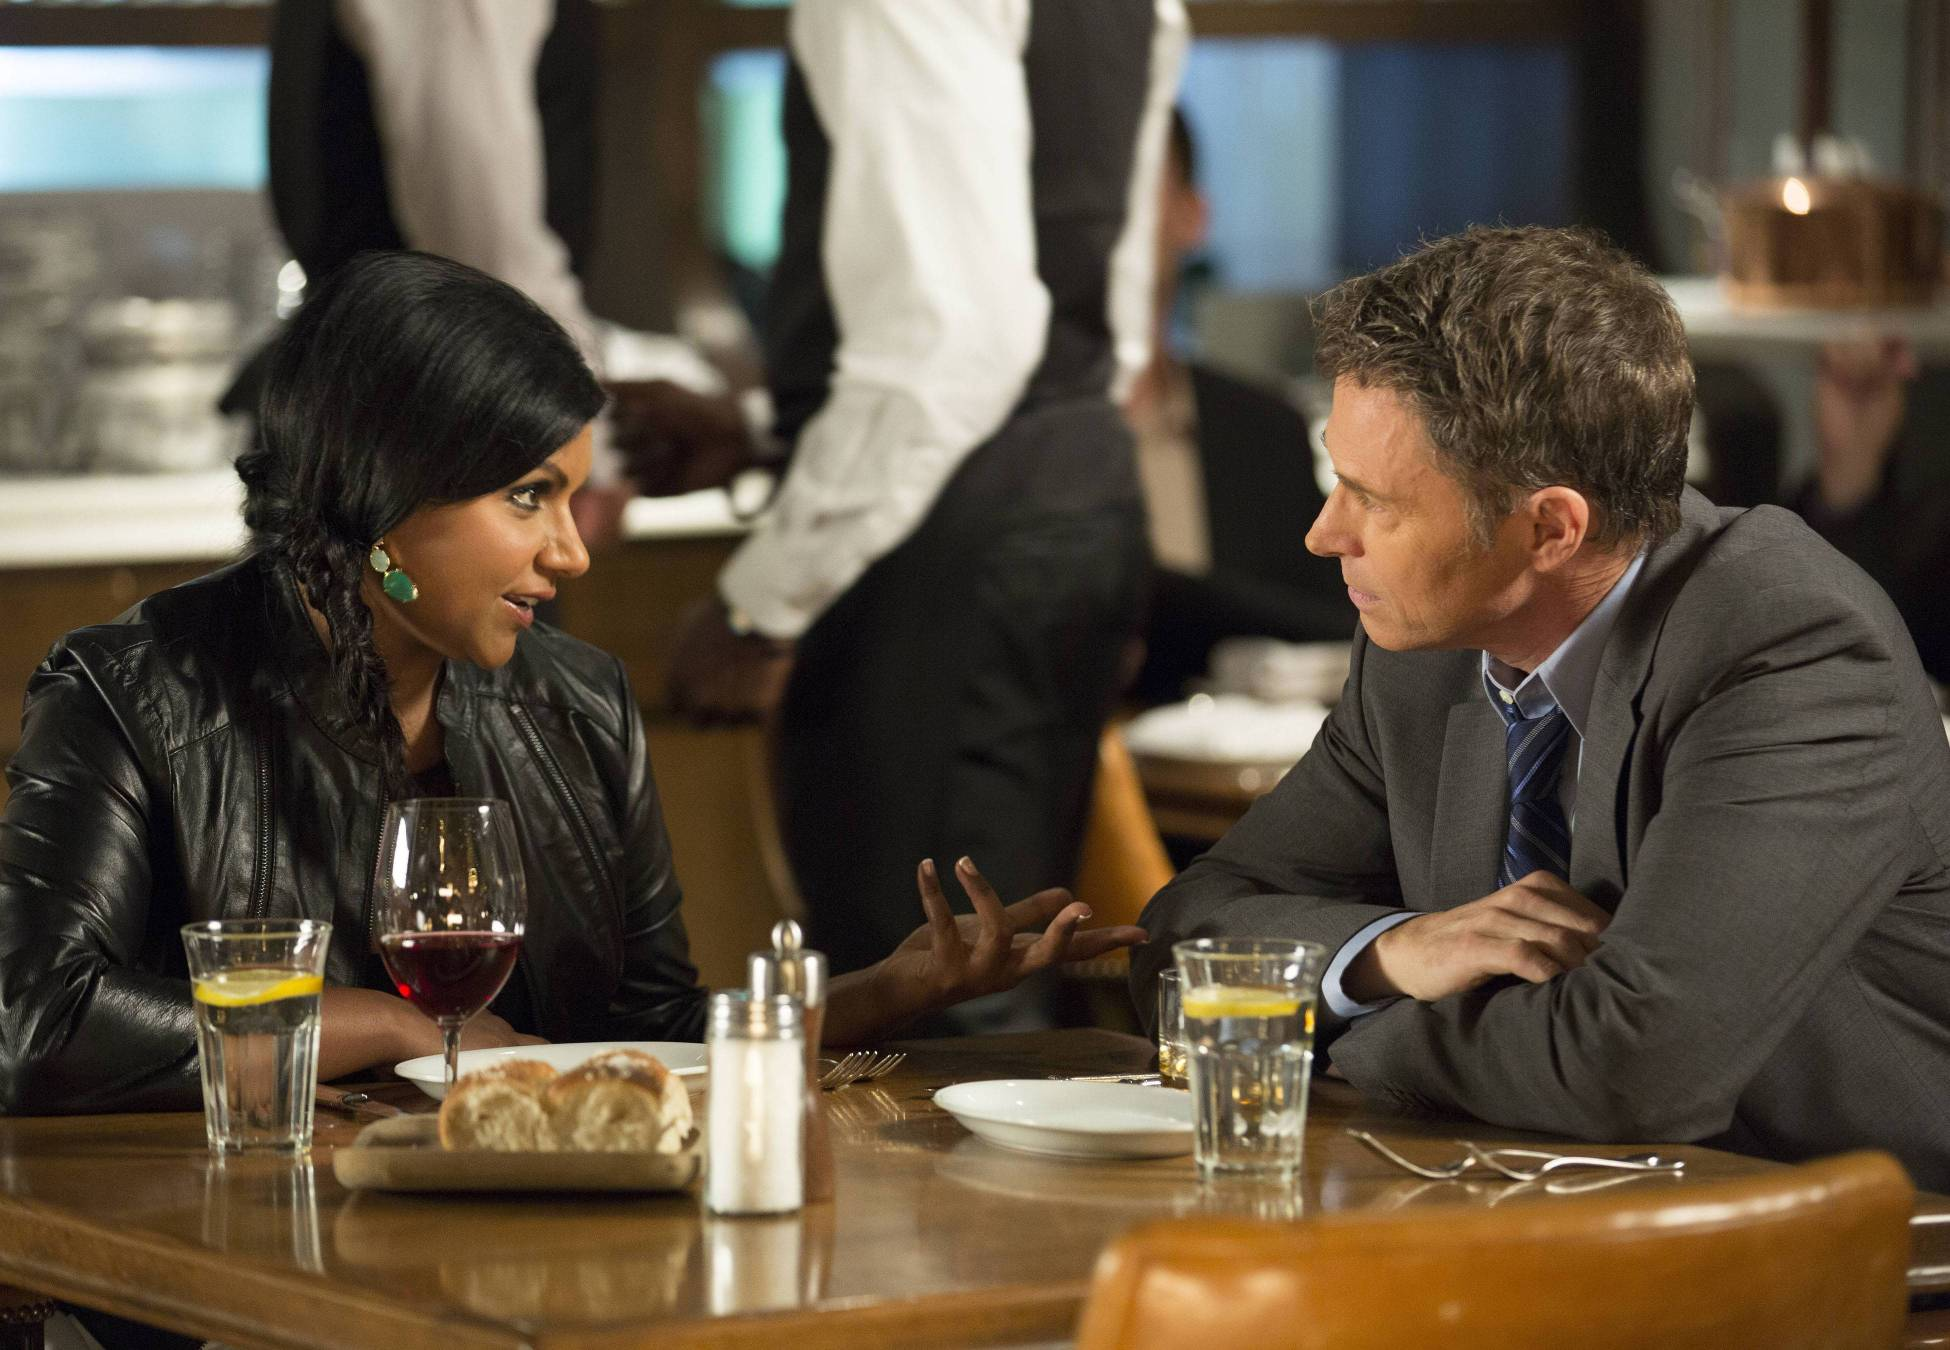 Yep! Looks like a date with Charlie (guest star Tim Daly).